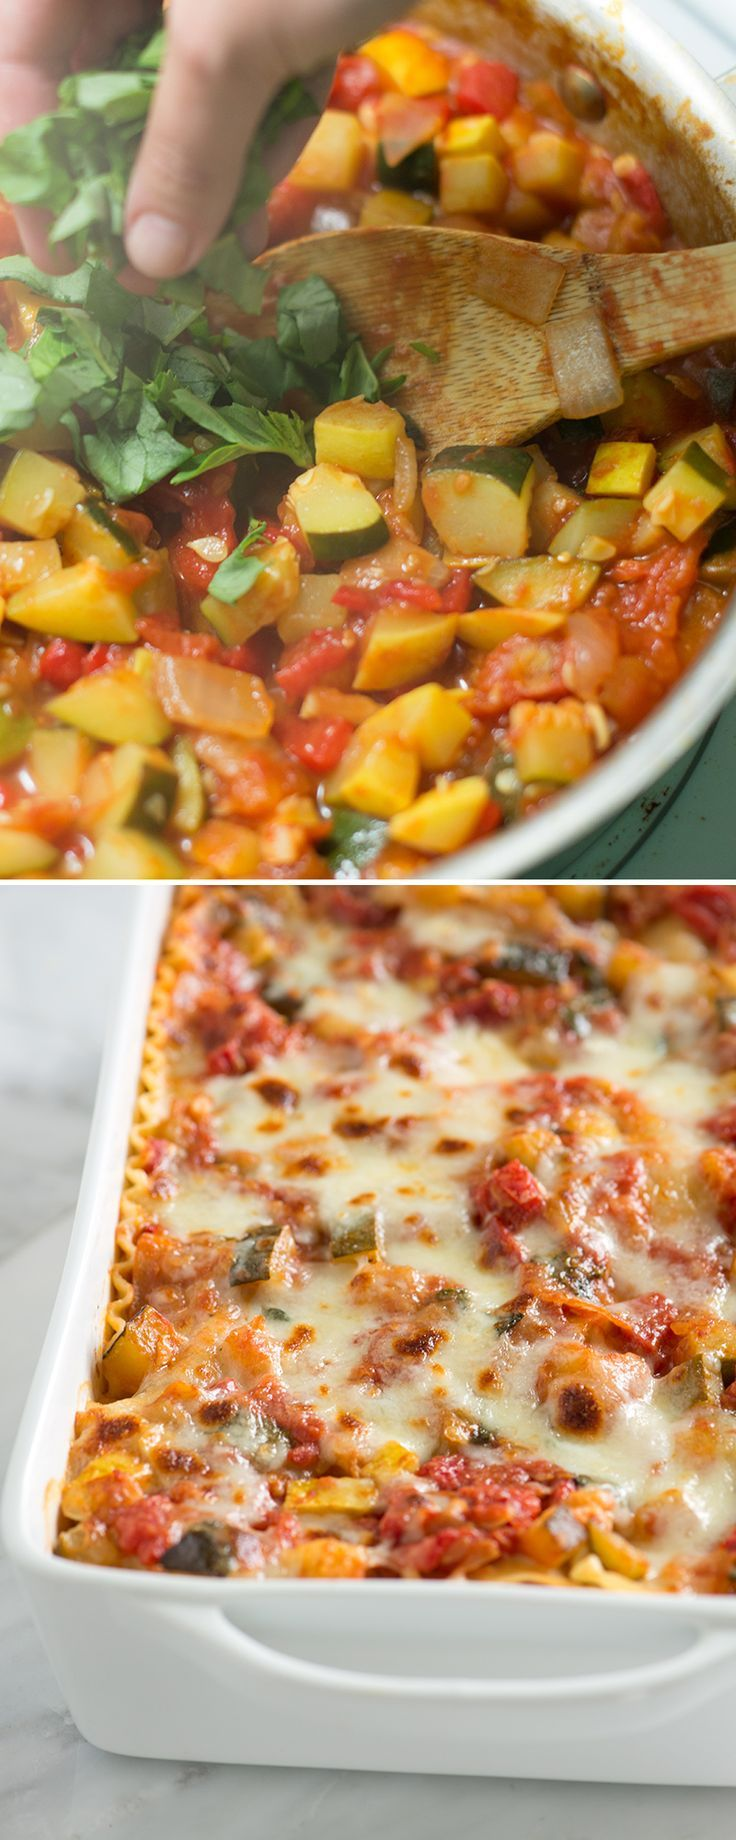 ... Lasagna on Pinterest | Vegetarian lasagna recipe, Meatless lasagna and